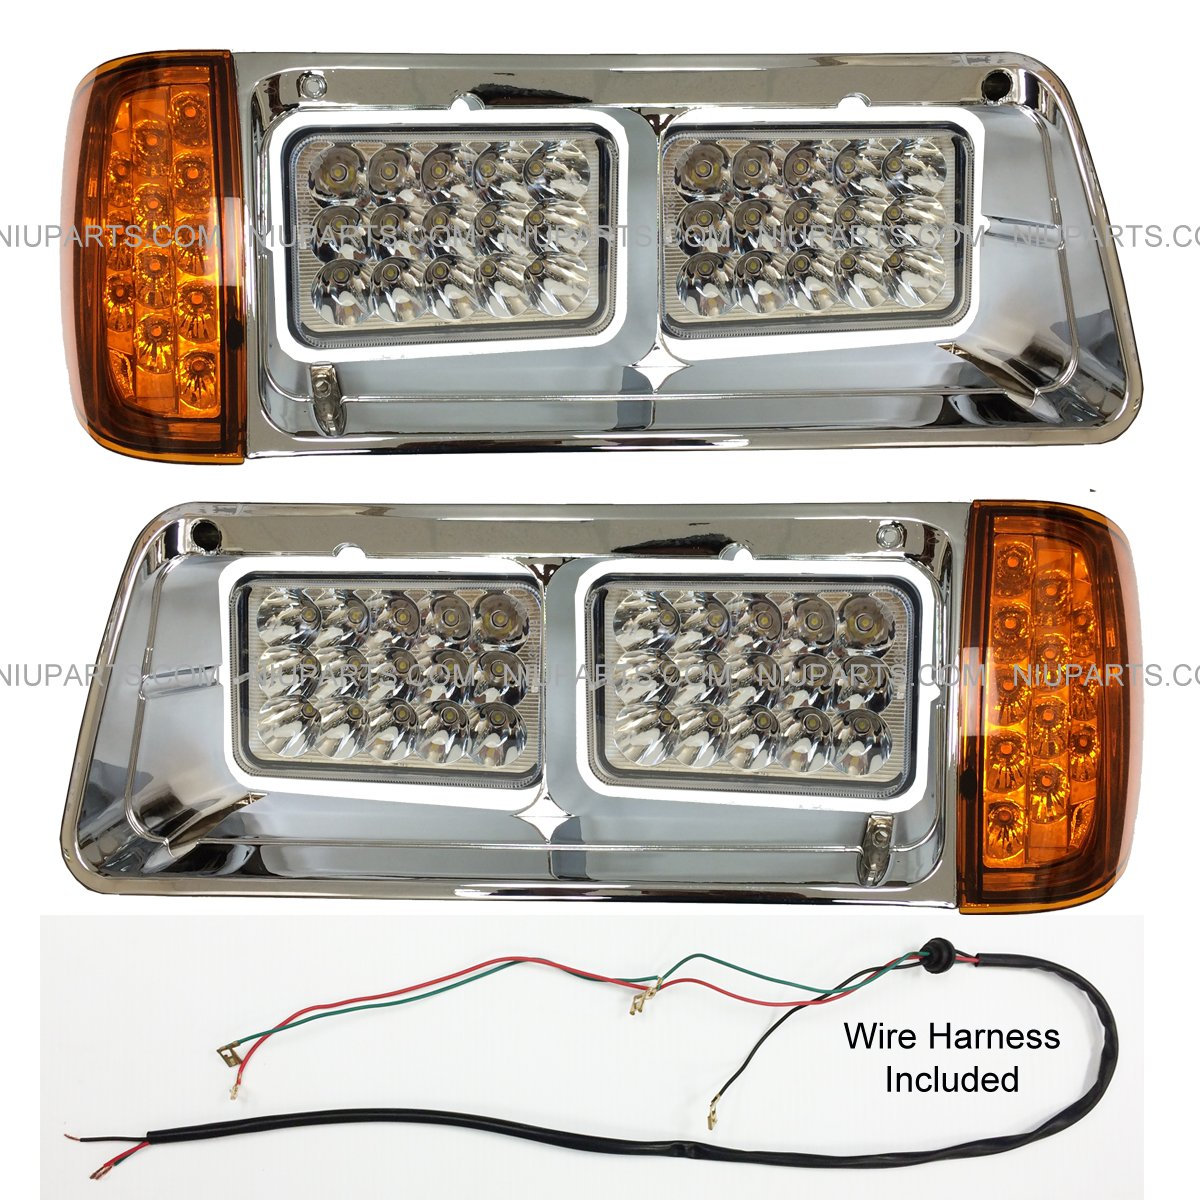 Freightliner Fld 120 Headlights Top Deals Lowest Price Headlamp Wire Harness For Led Headlight With Corner Light And Bezel Chrome Driver Passenger Side Fit